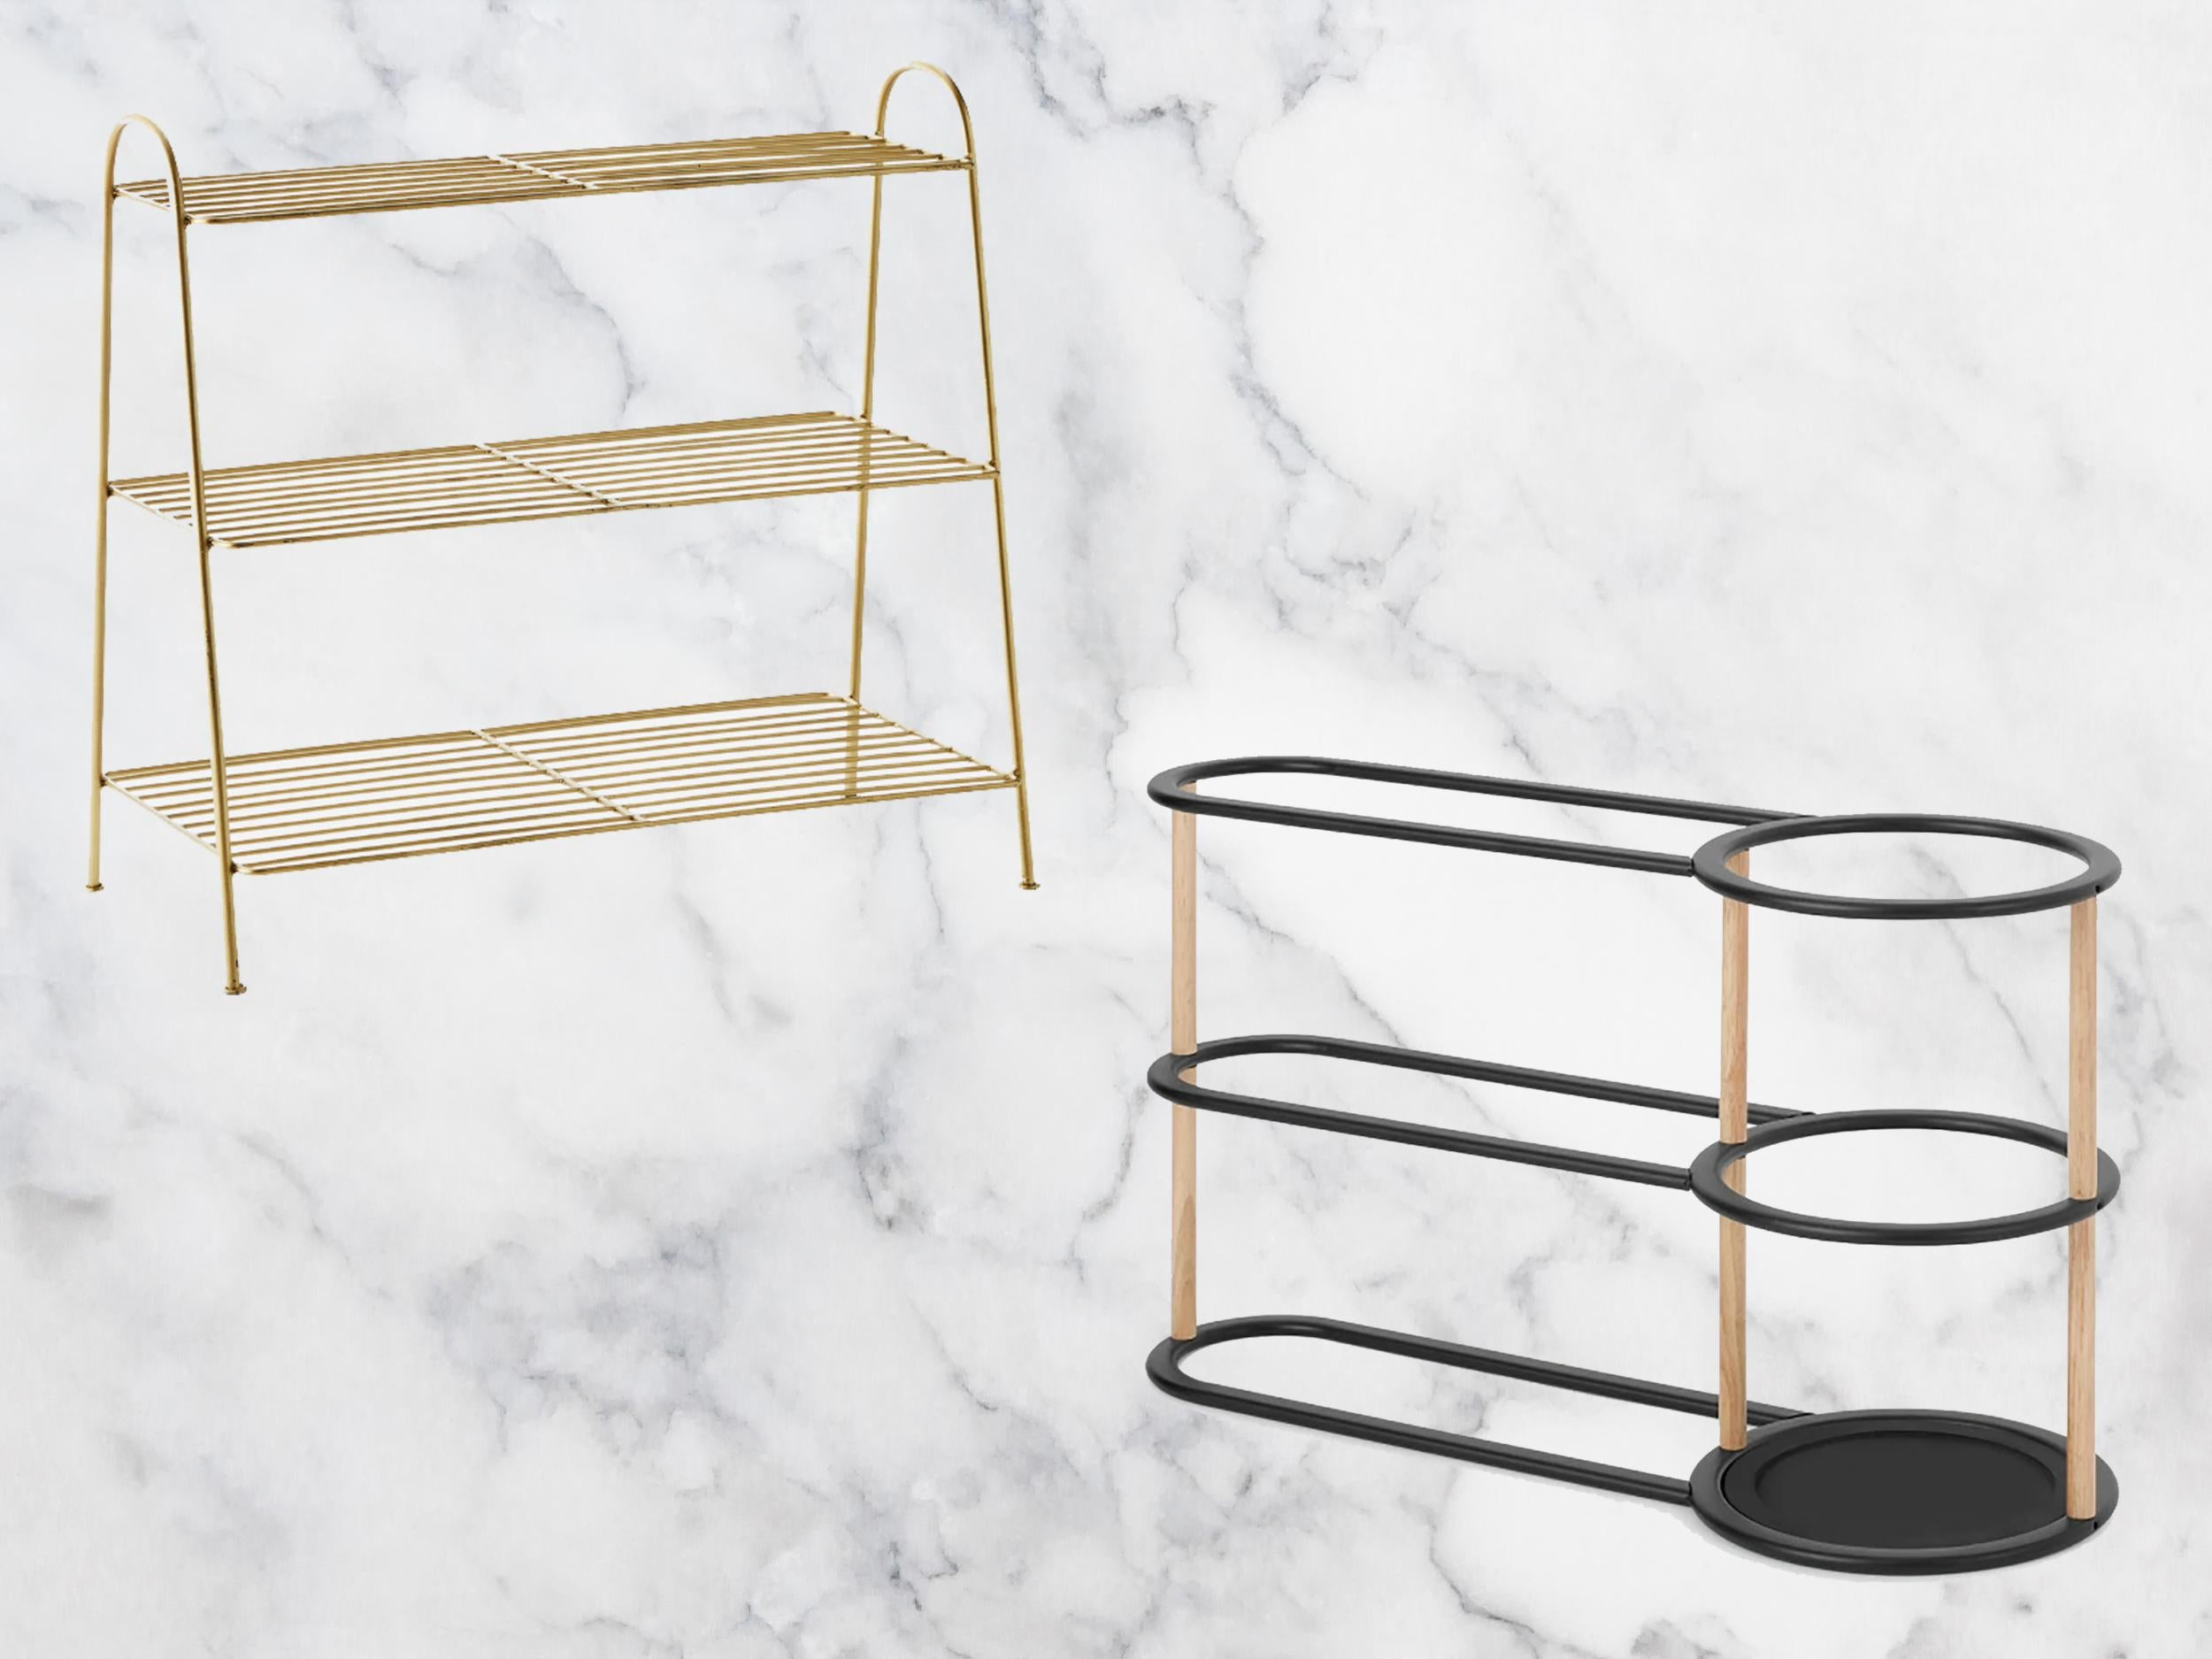 Best Shoe Rack Save Space With A Stylish Organiser The Independent